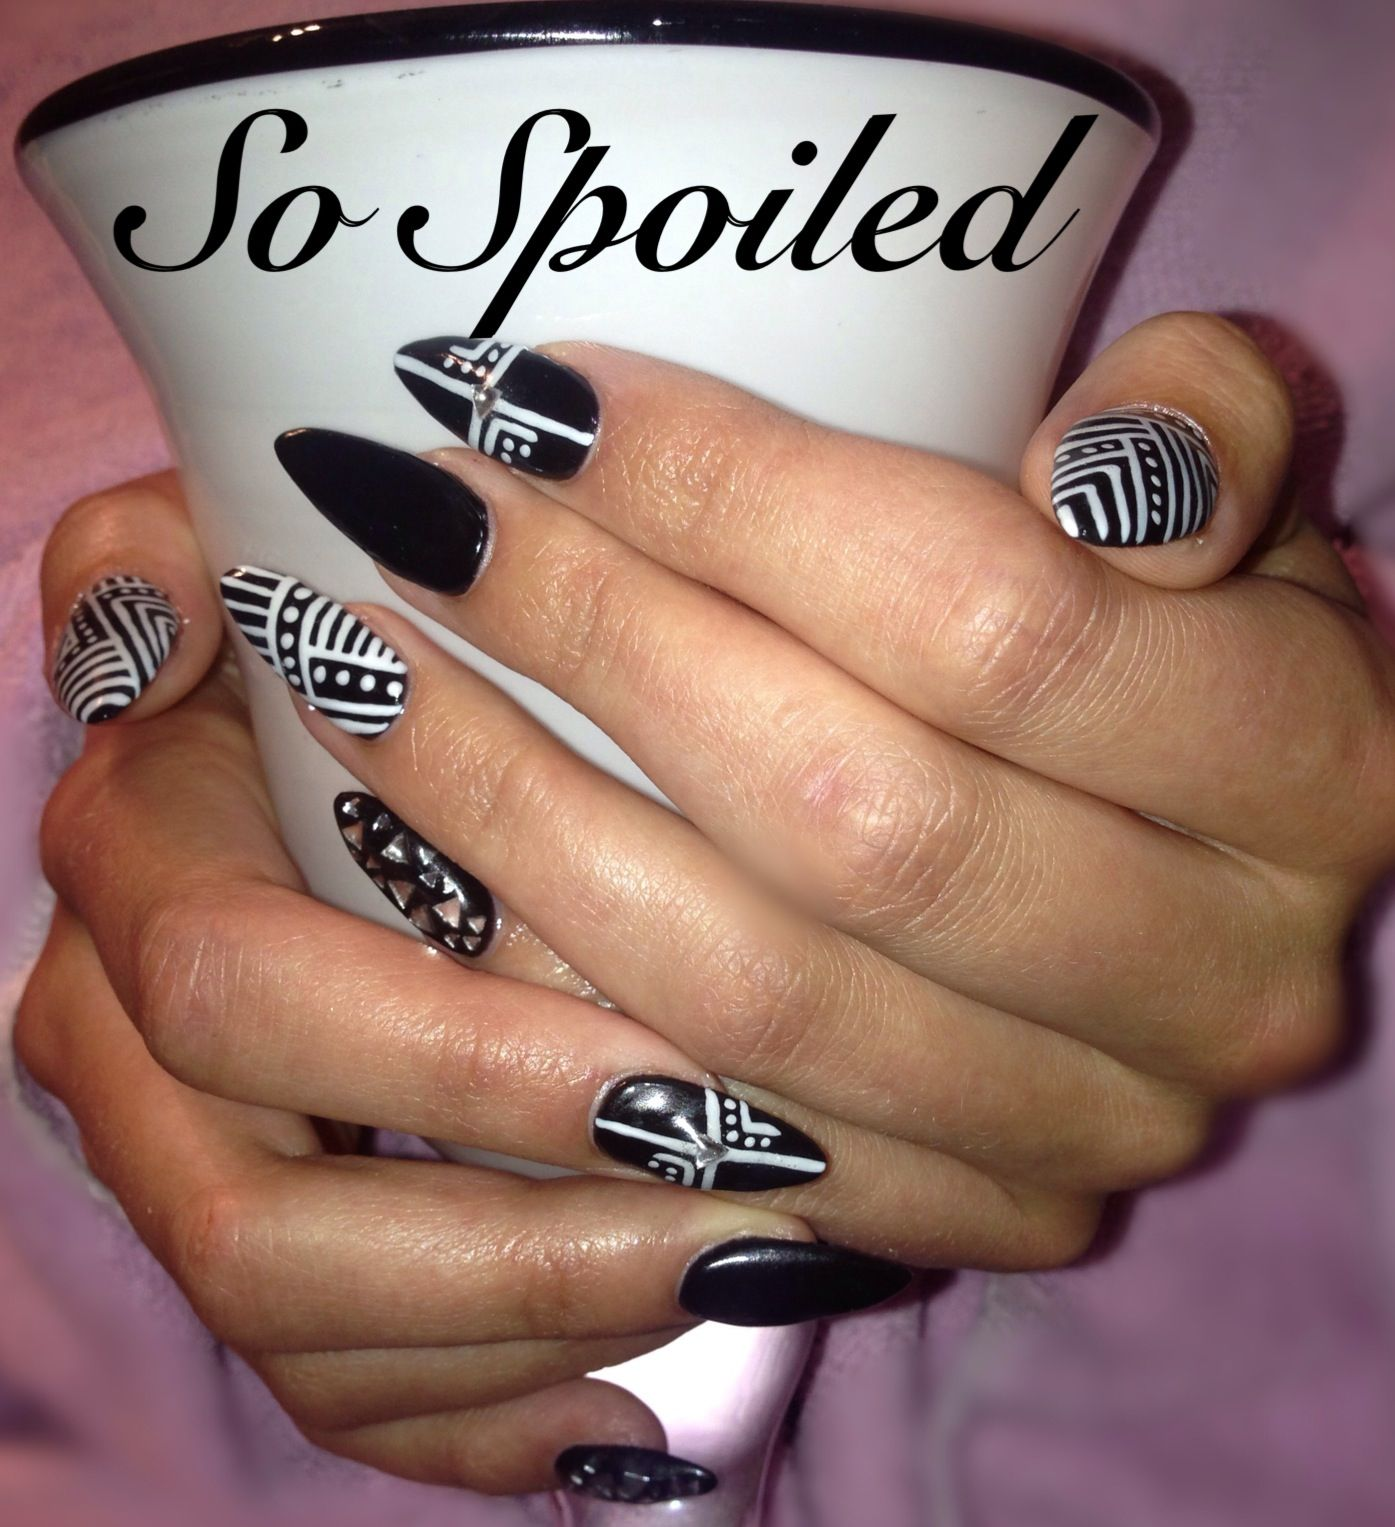 Nail art and design trendy black stilettos with white free hand nail art and design trendy black stilettos with white free hand design and rhinestones prinsesfo Image collections